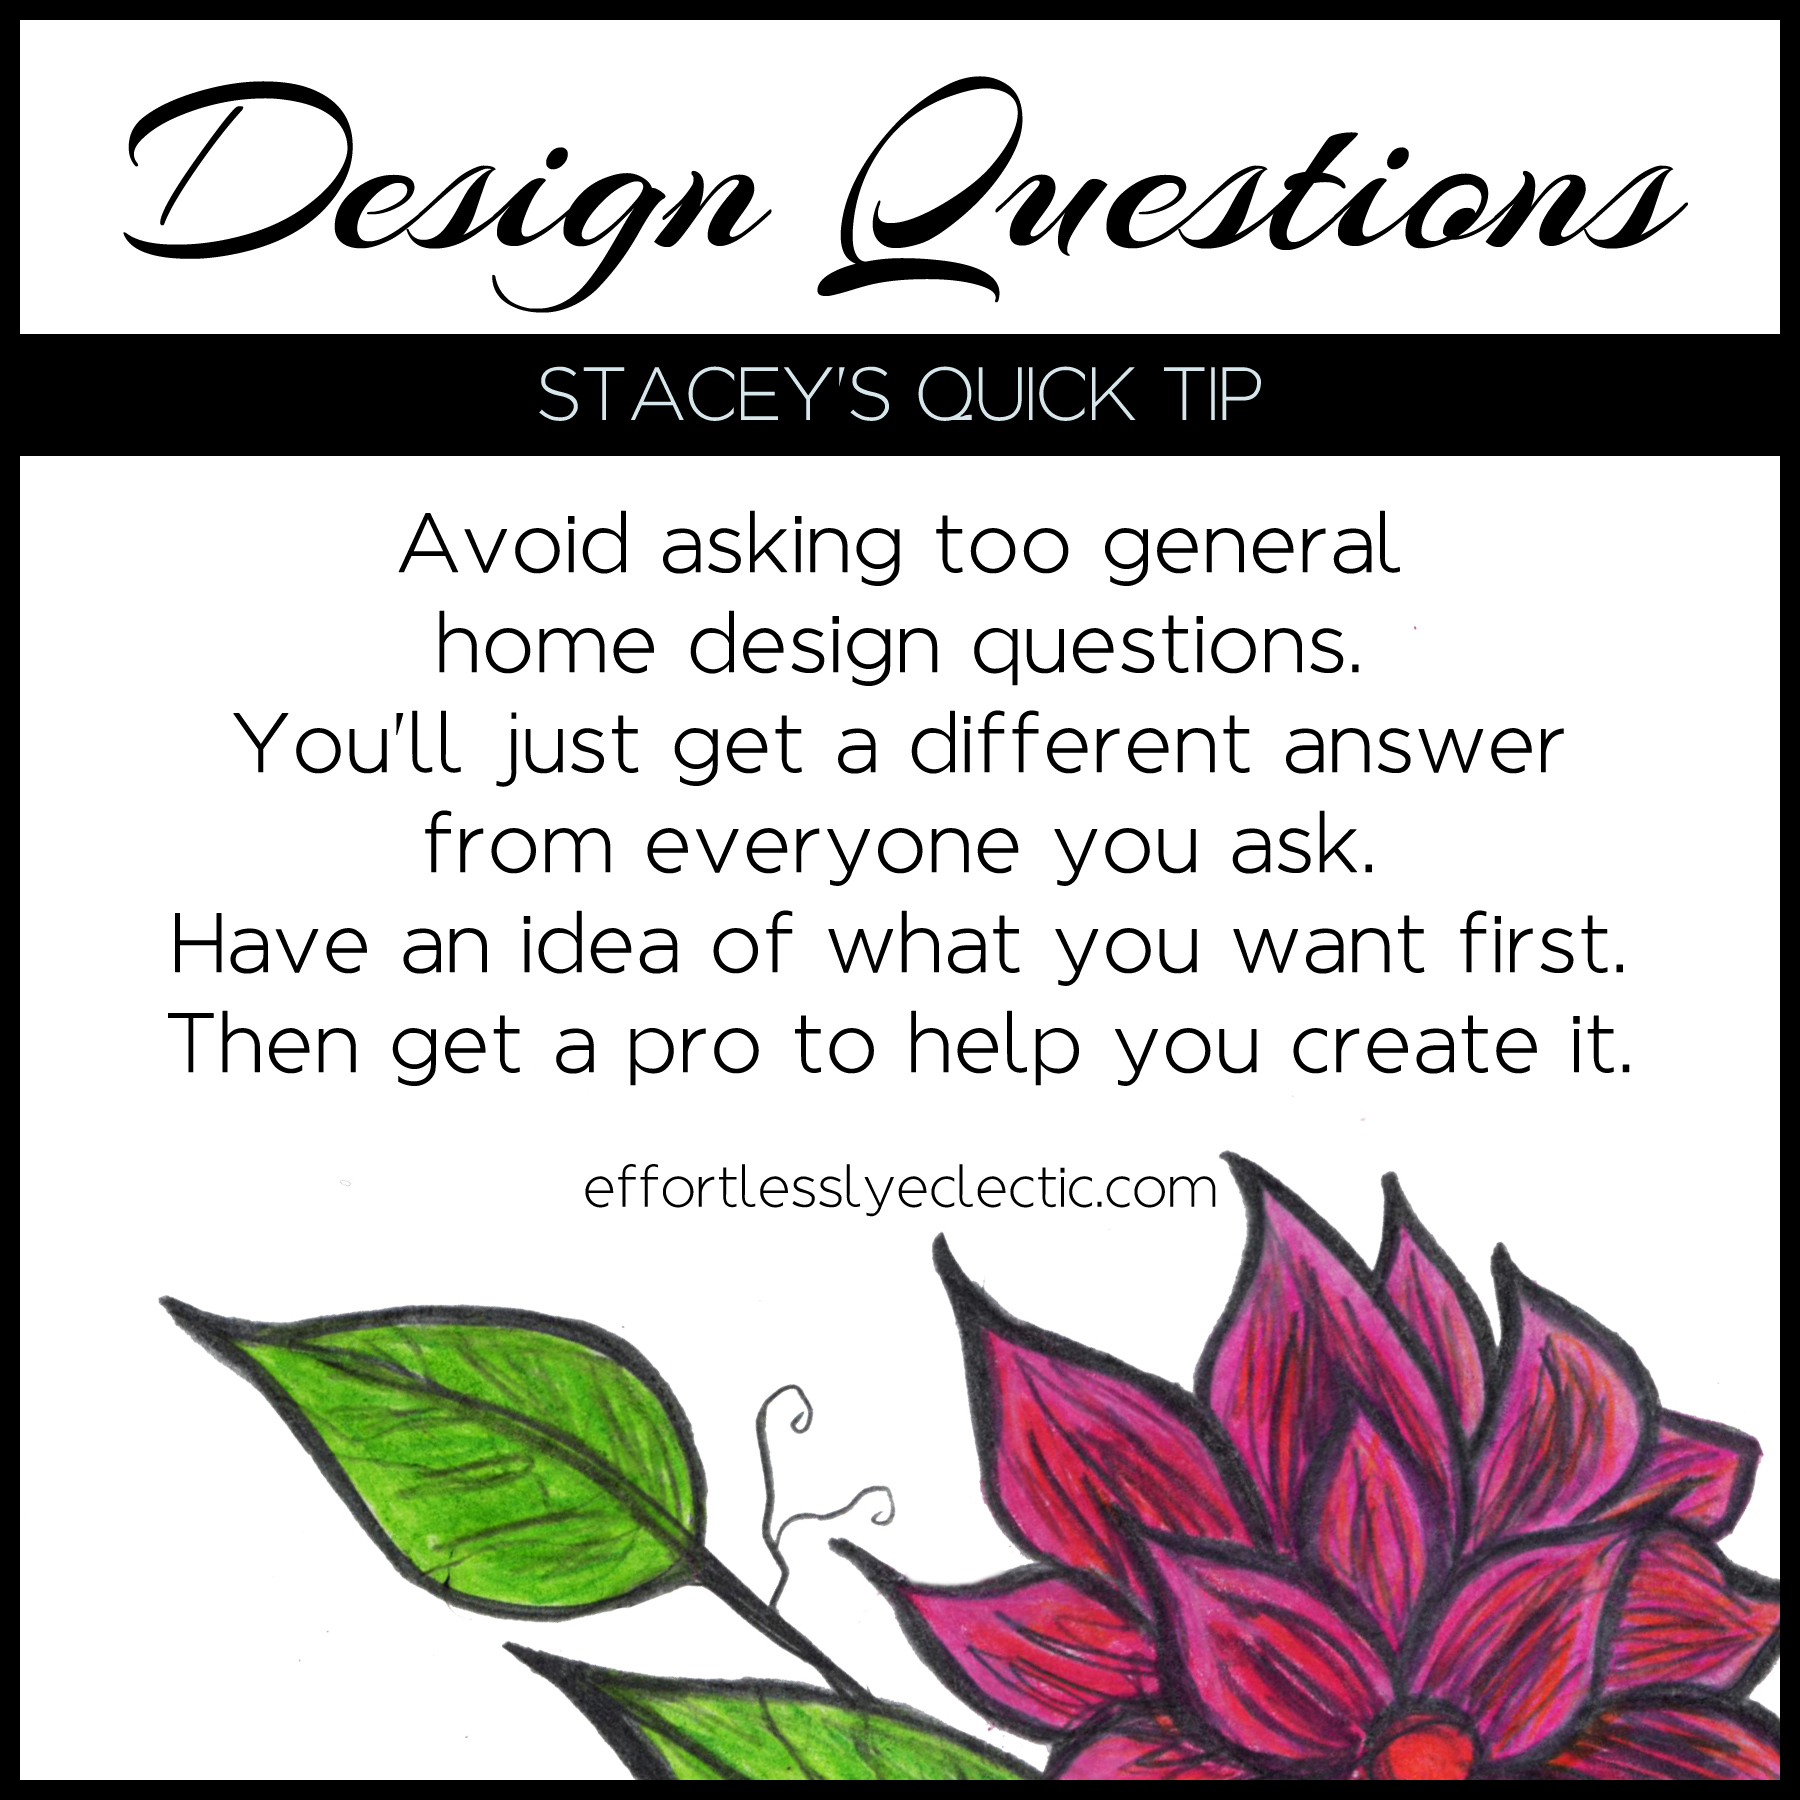 Design Questions - A home decor tip about getting decorating help